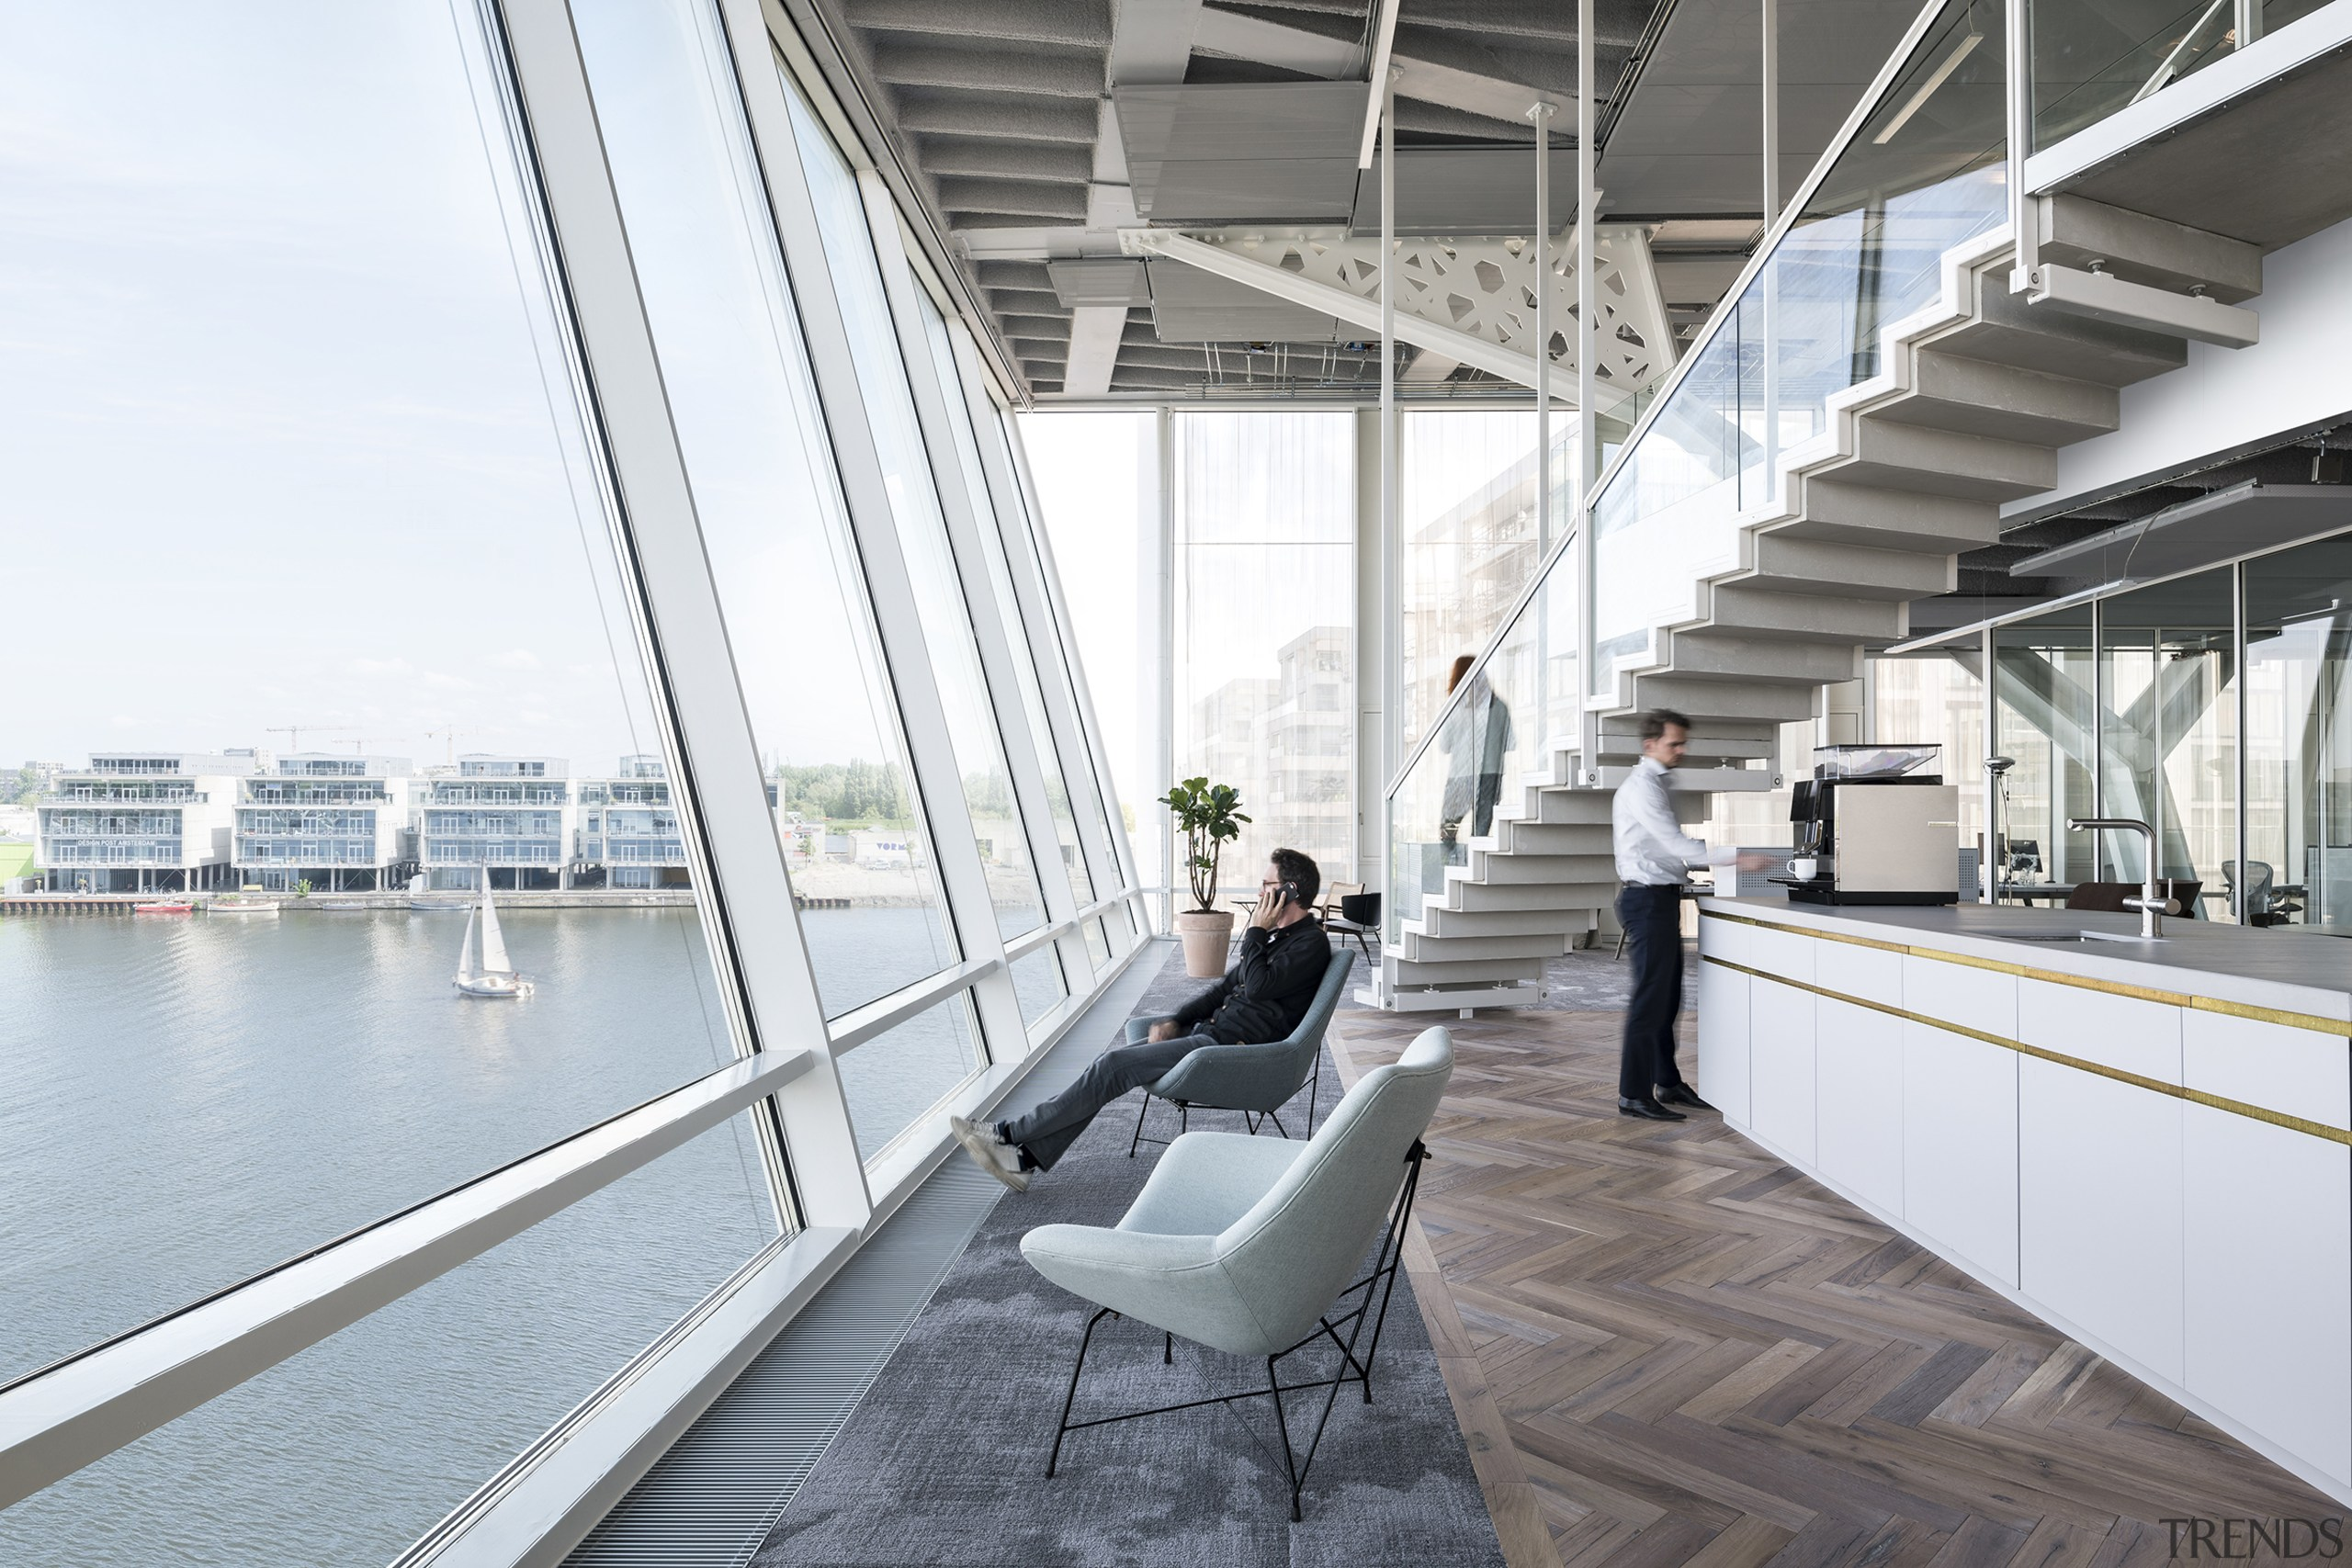 The harbour-facing facade of the developer's offices resembles architecture, building, daylighting, design, interior design, metropolitan area, white, gray